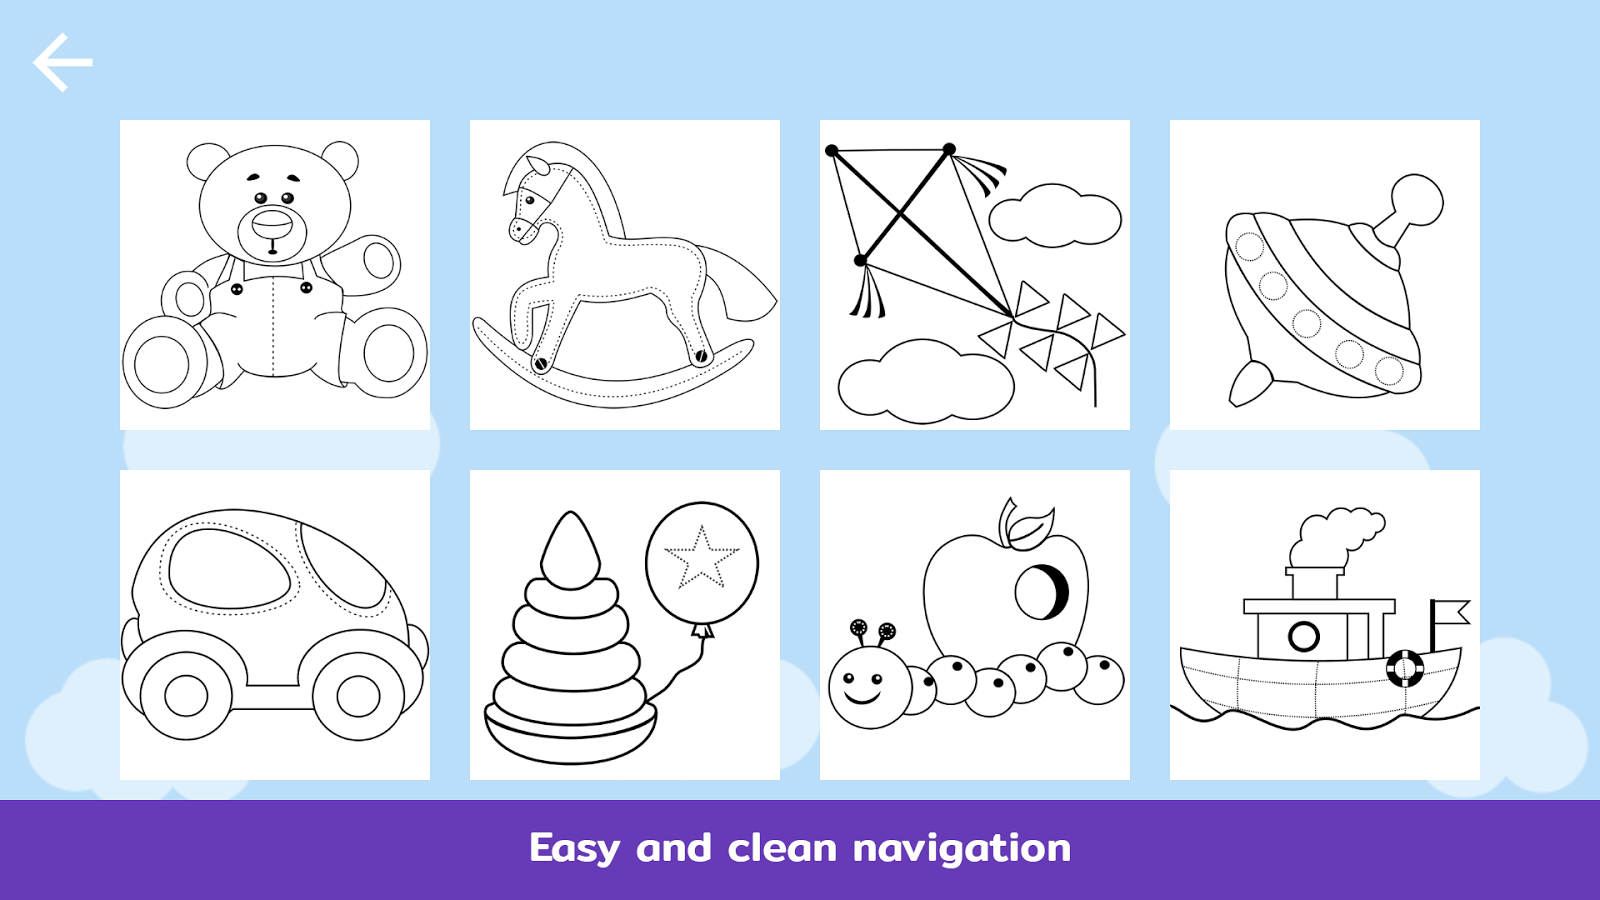 The coloring book clean - Teddy Coloring Book For Kids Screenshot